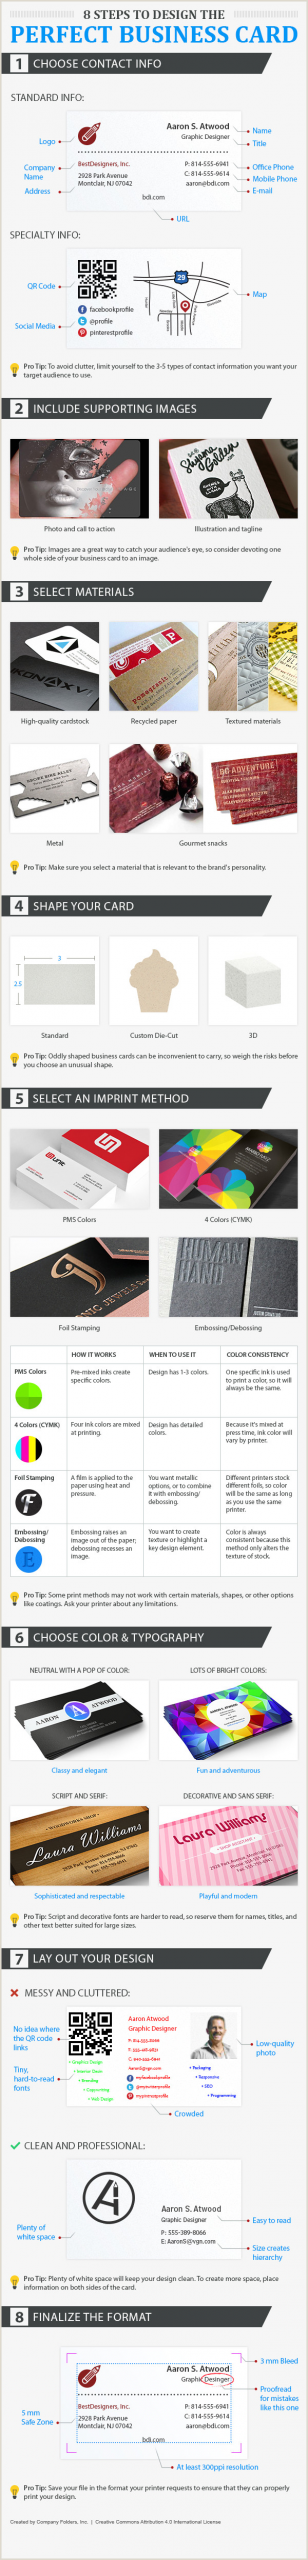 What Makes A Great Business Card How To Design The Perfect Business Card